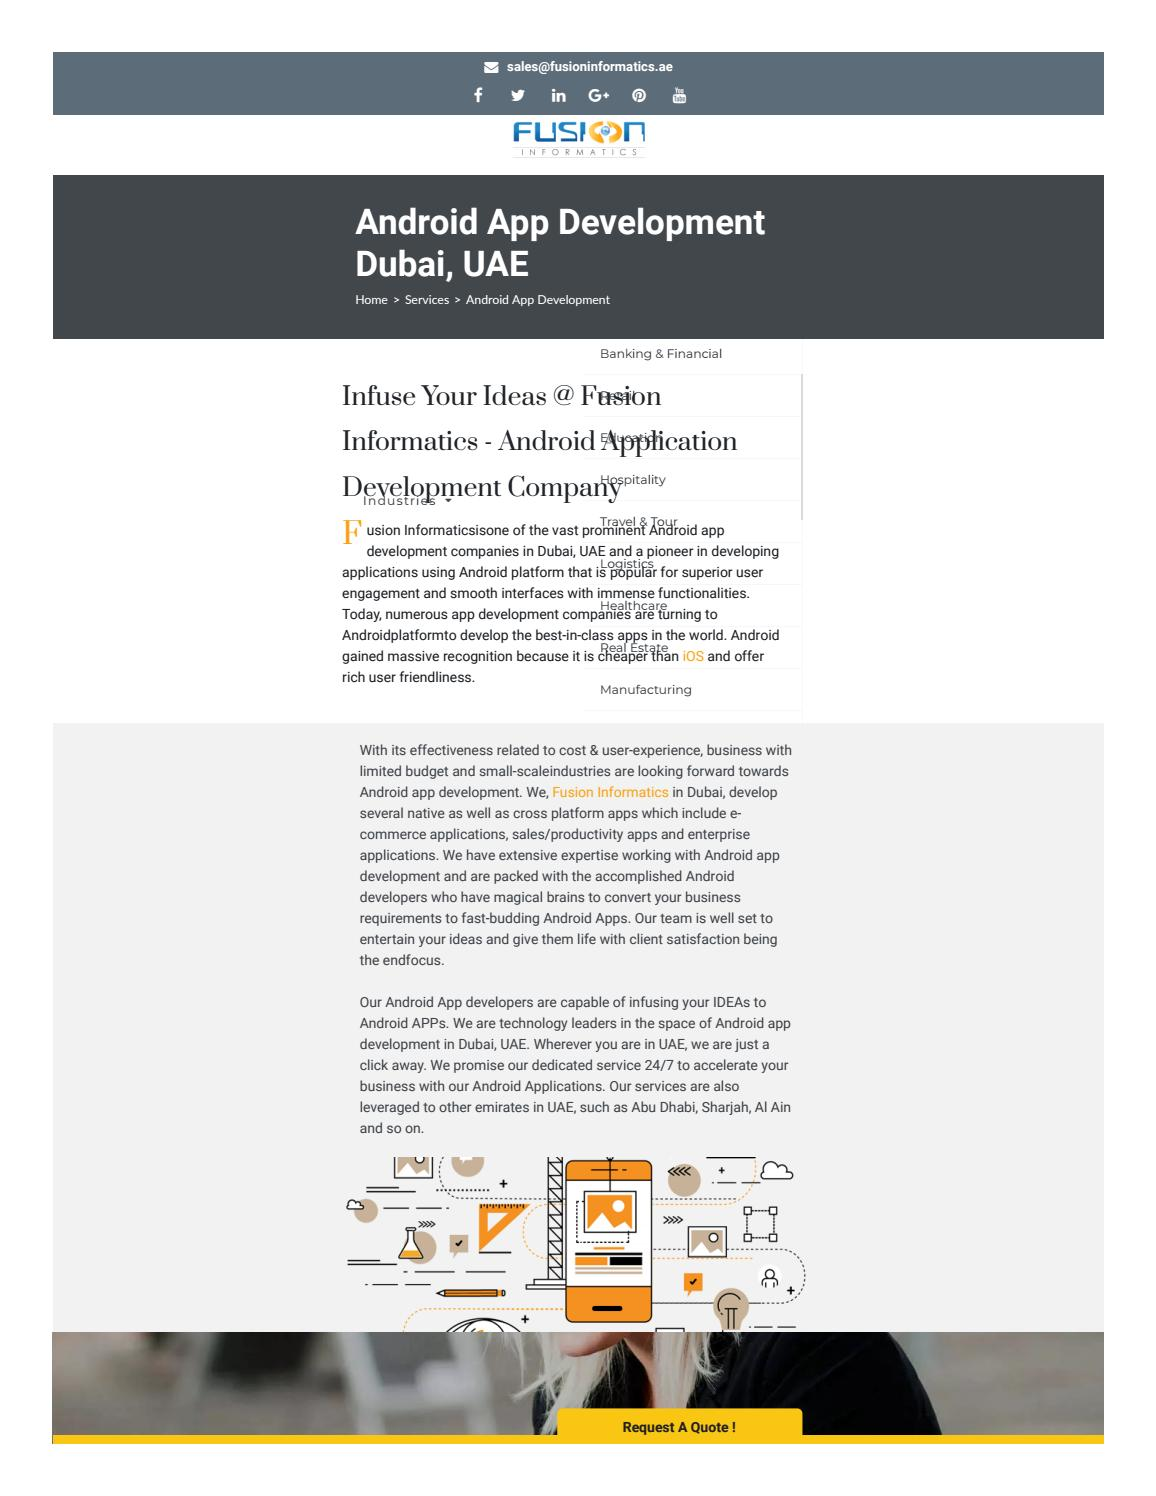 List Of Android App Development Companies In Dubai by s